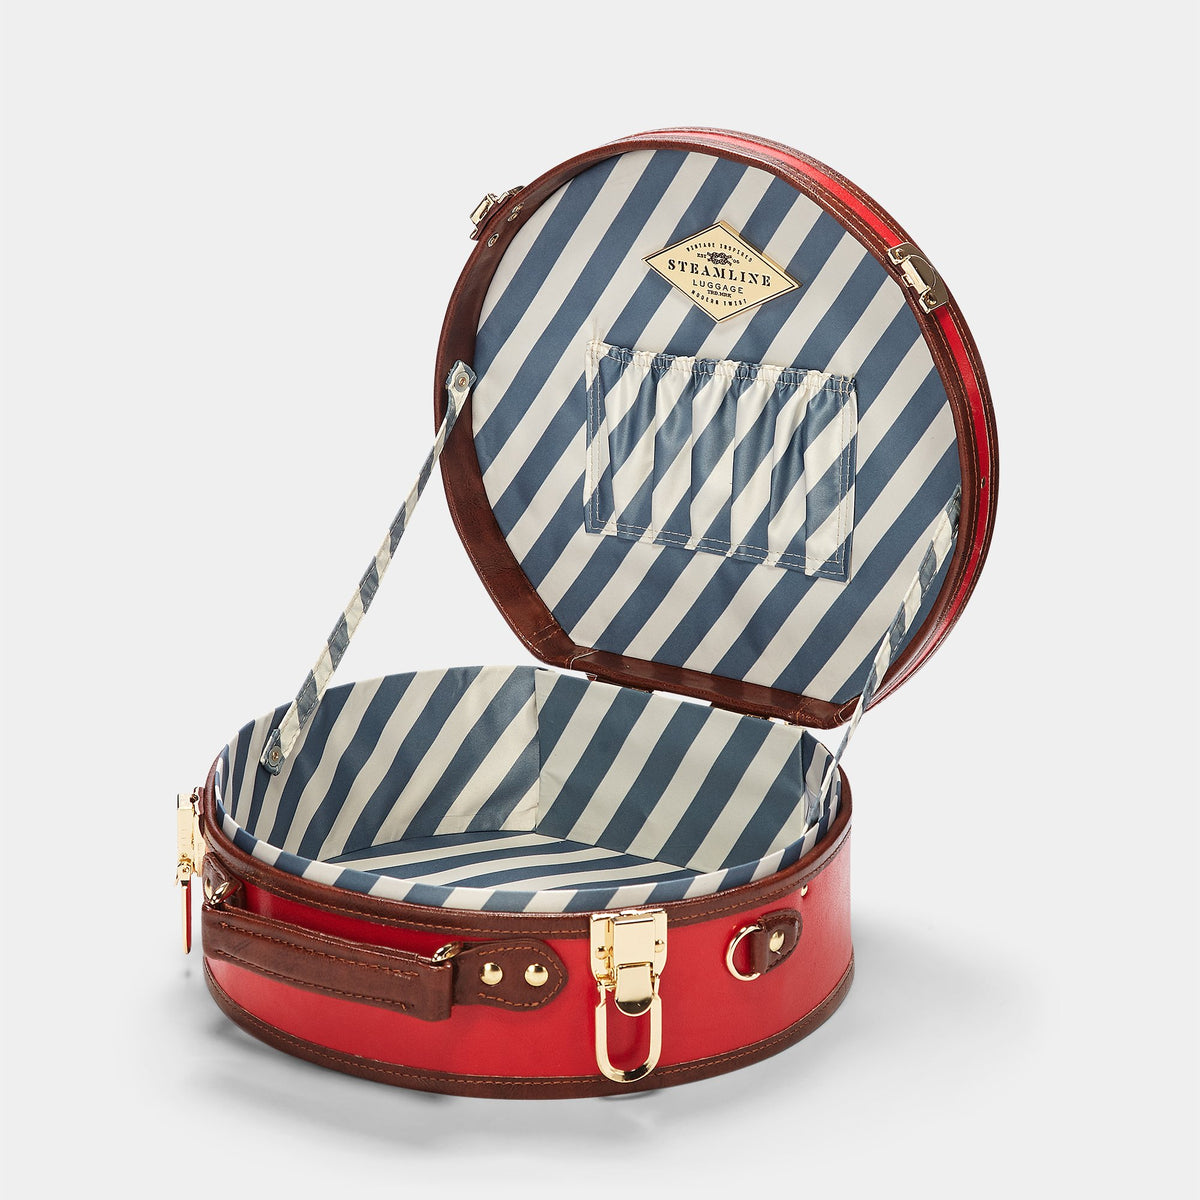 The Entrepreneur Hatbox Small in Red - Hat Box Luggage - Interior Front